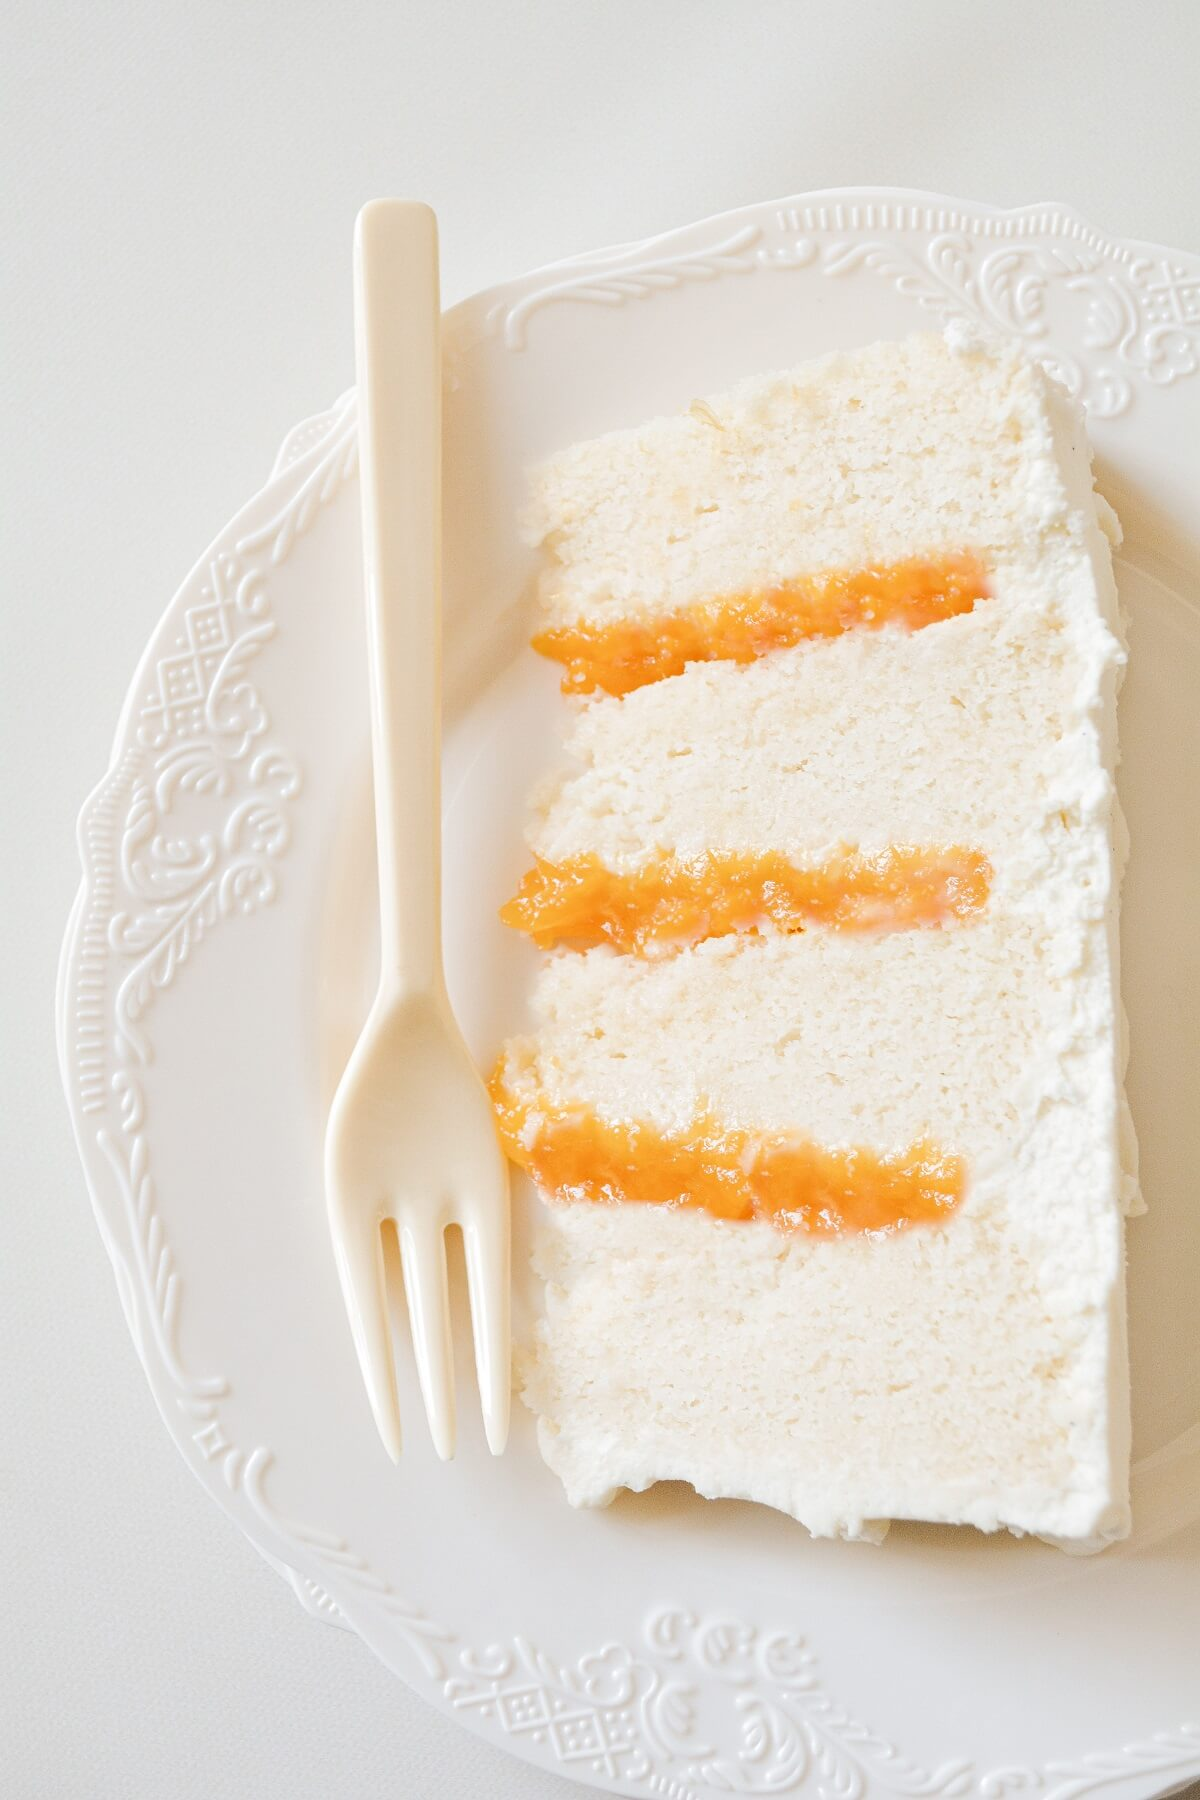 A slice of peaches and cream cake on a white plate.